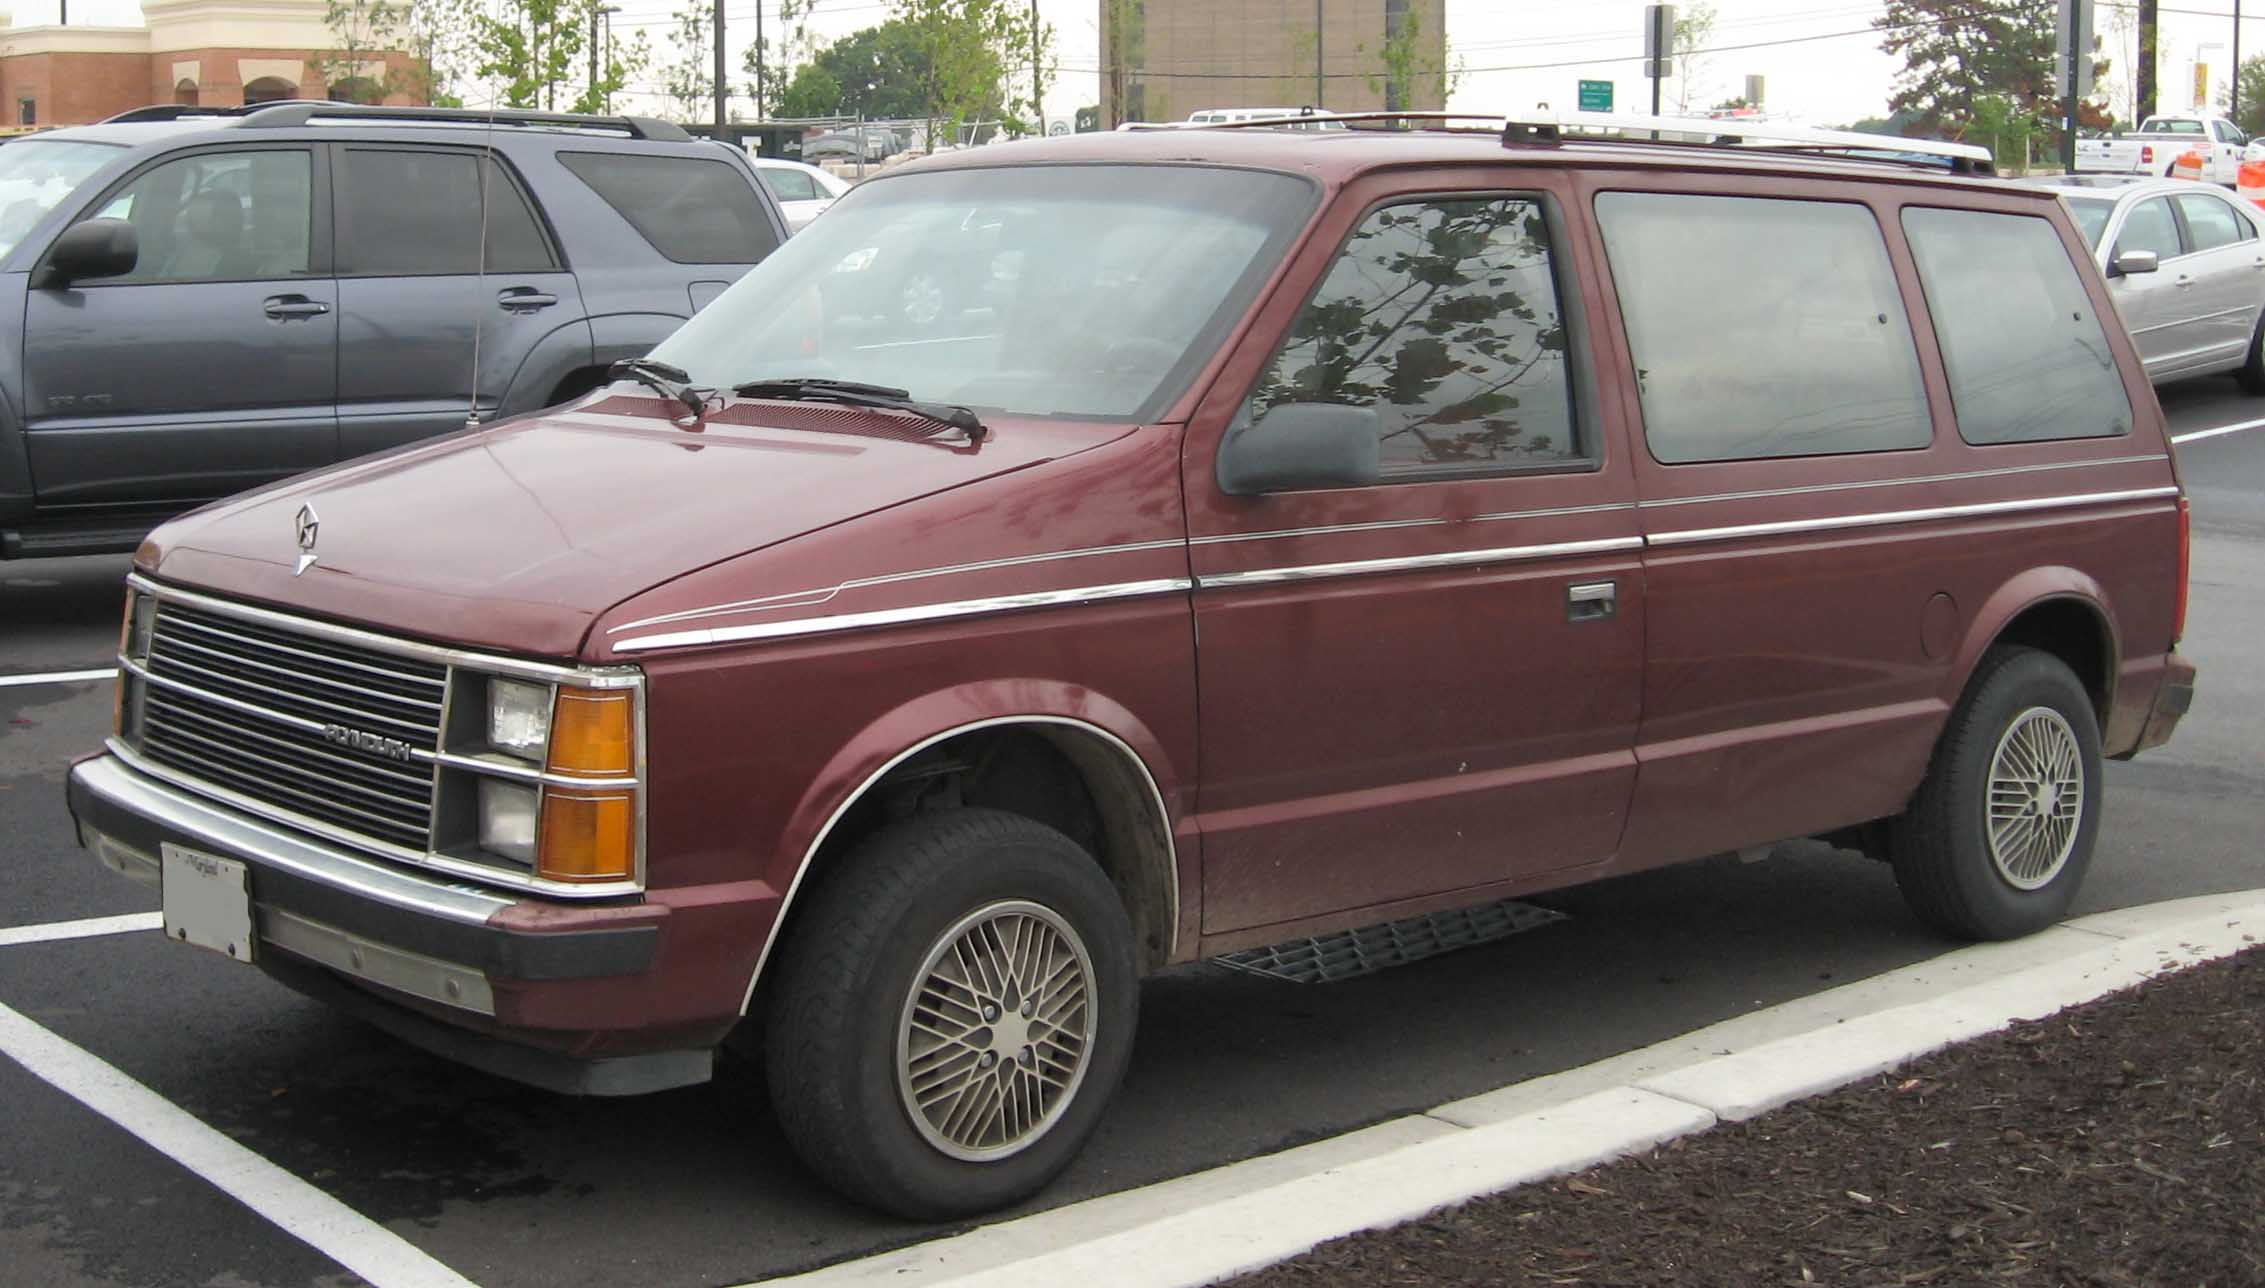 Minivan of the 1990's